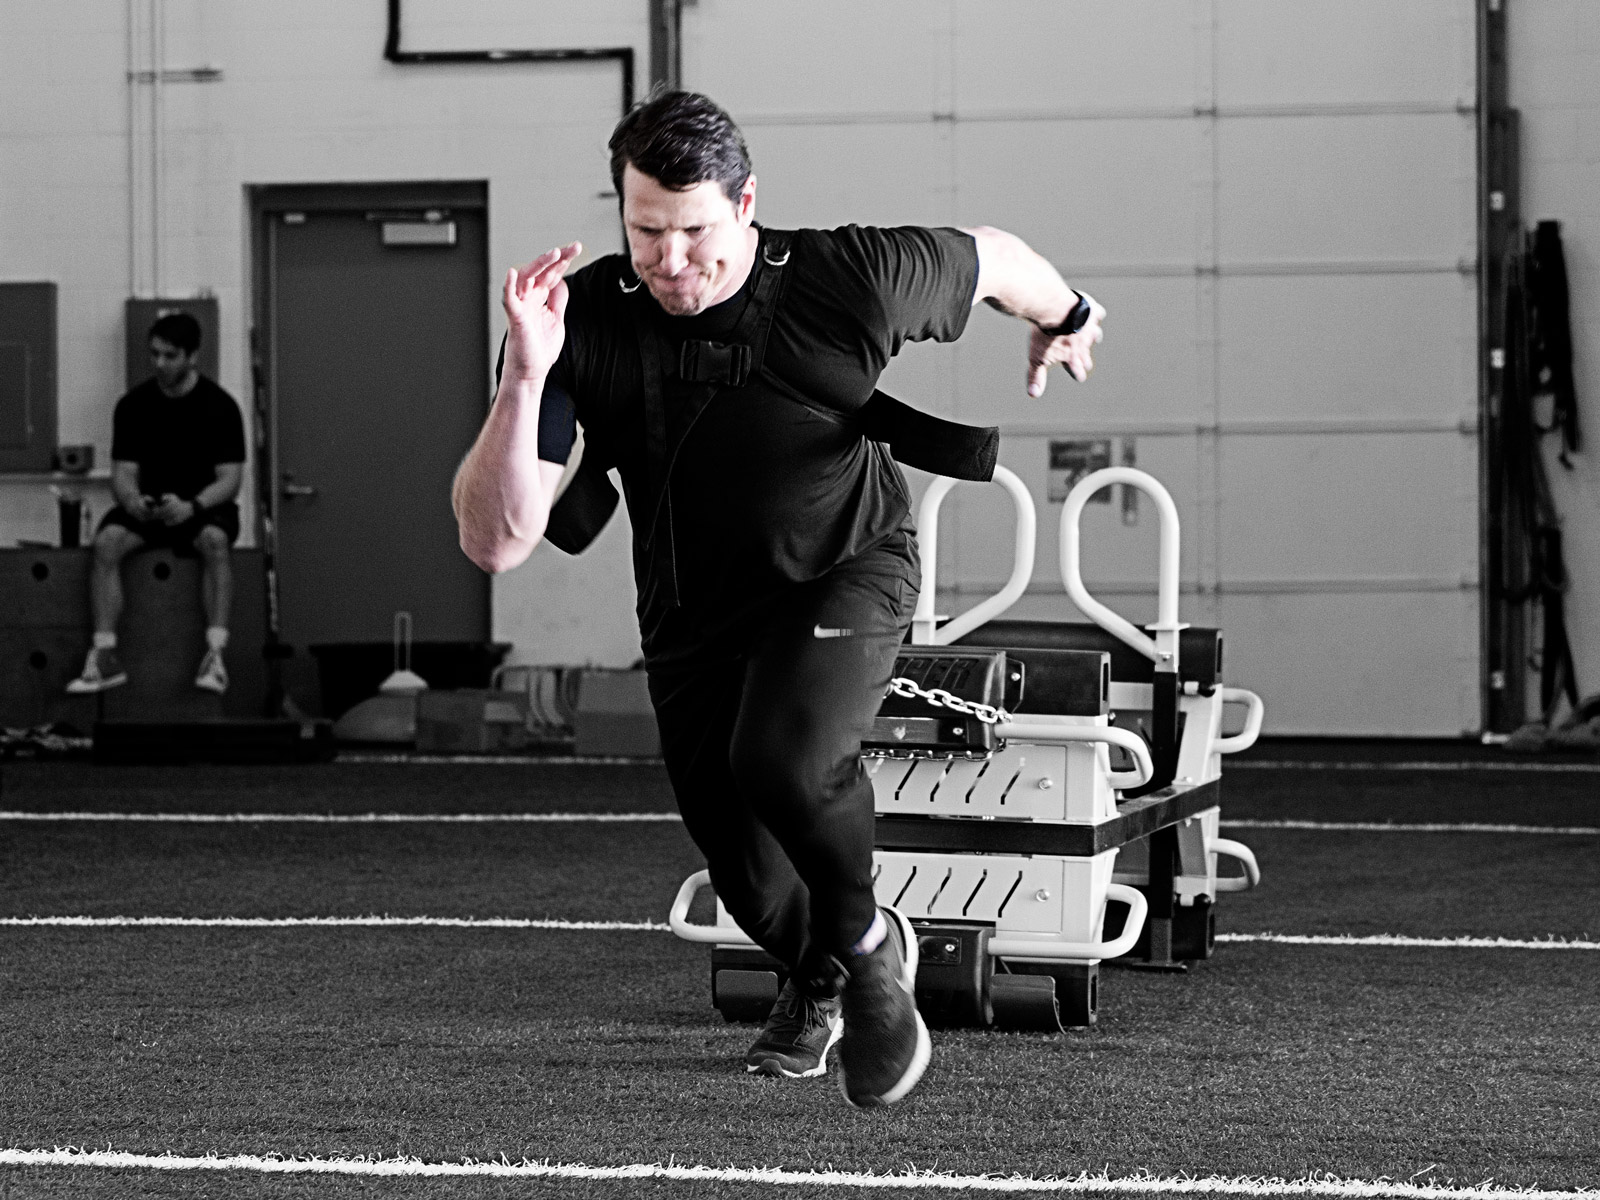 Man Pulling The Finisher for Speed Training